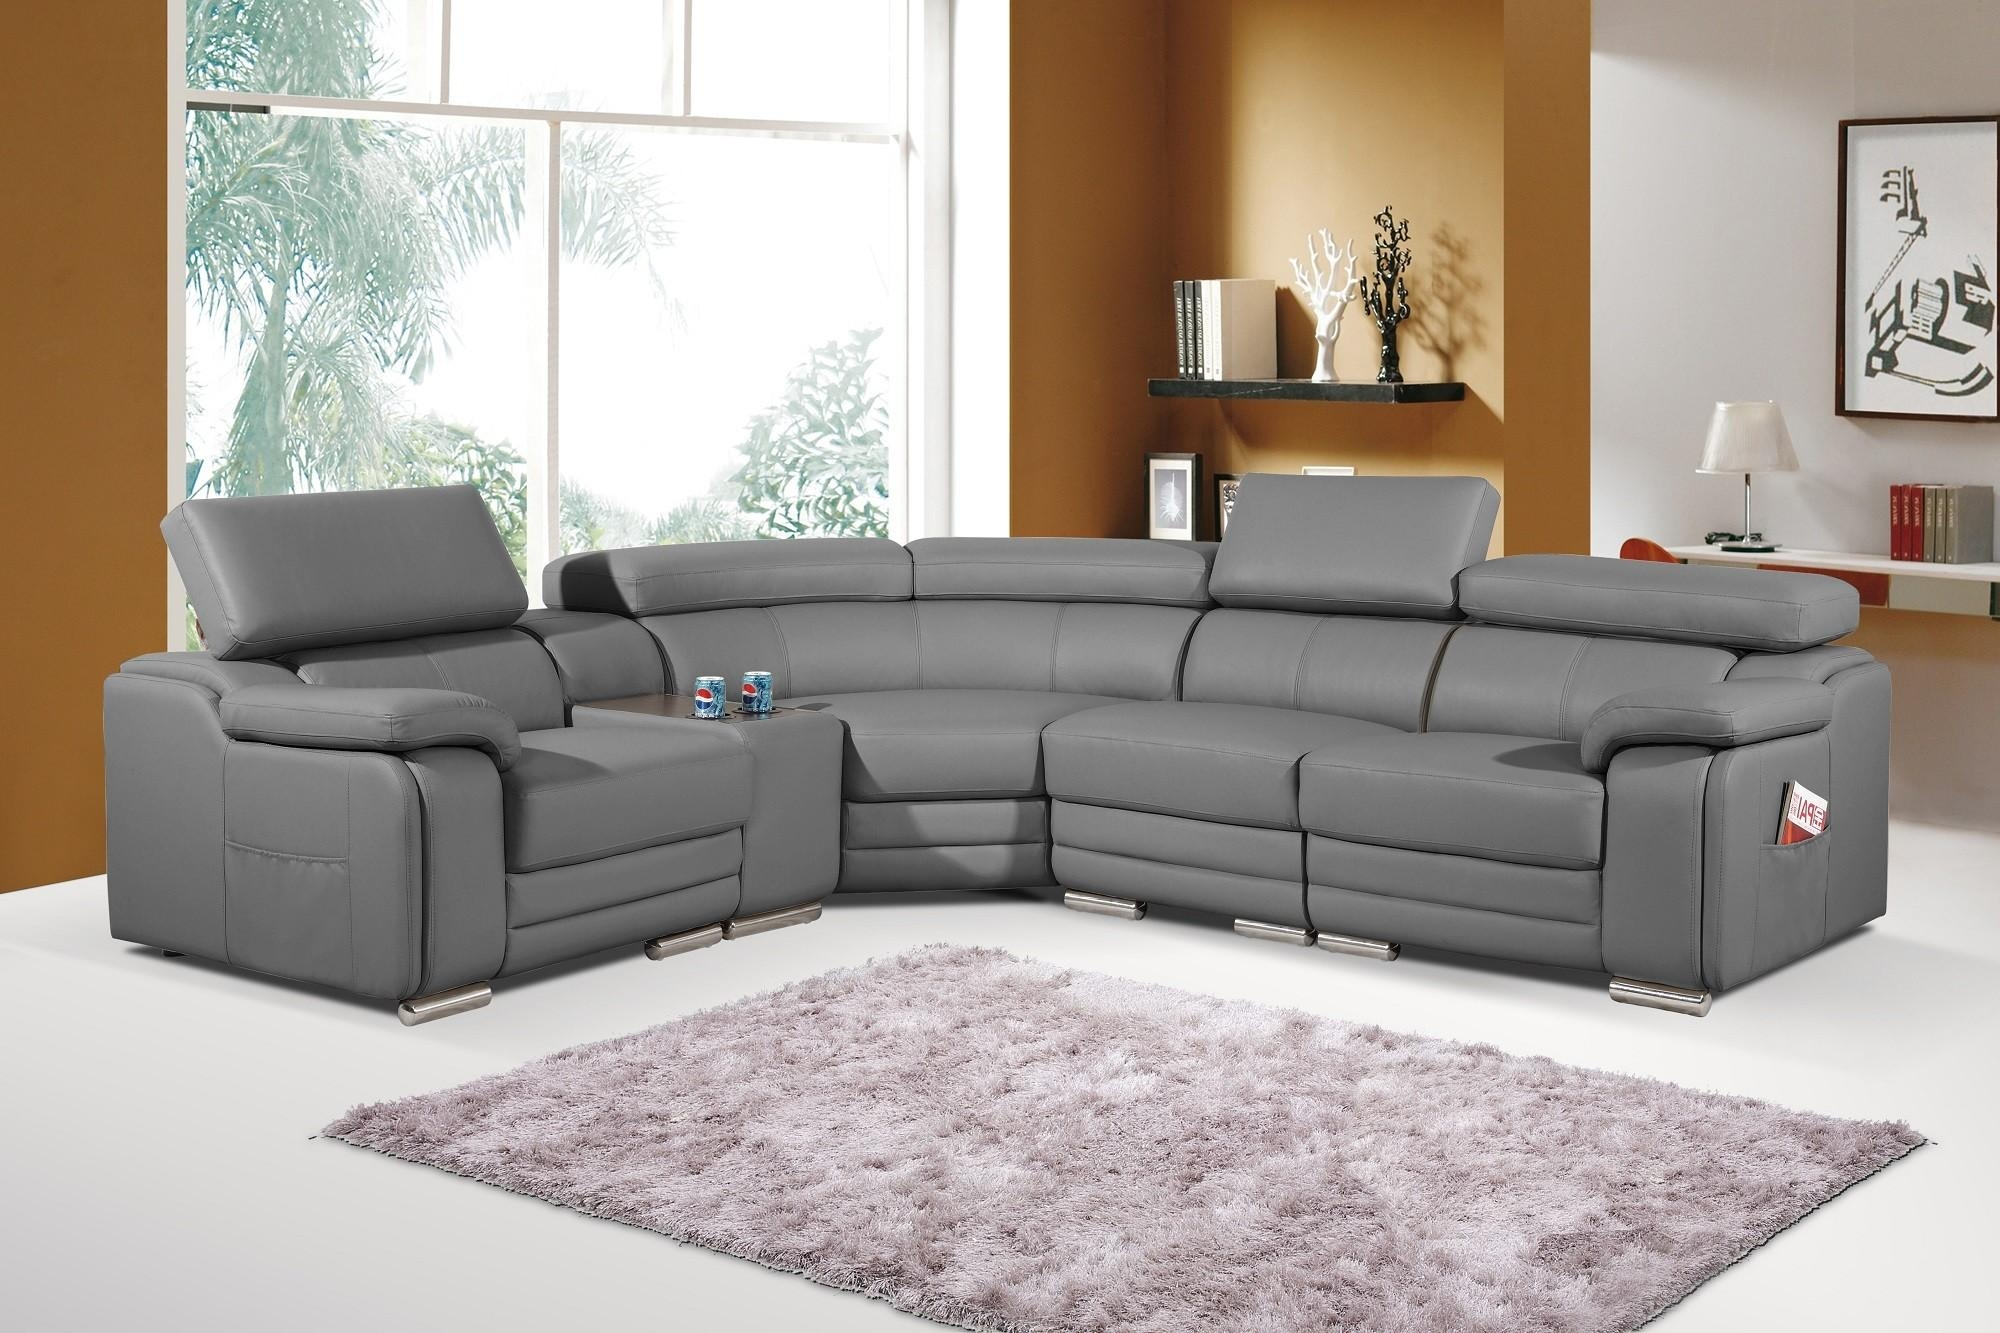 Ideas: Interesting Britania Corner Couch With Elegant Pattern For For Sofa Corner Units (Image 13 of 24)